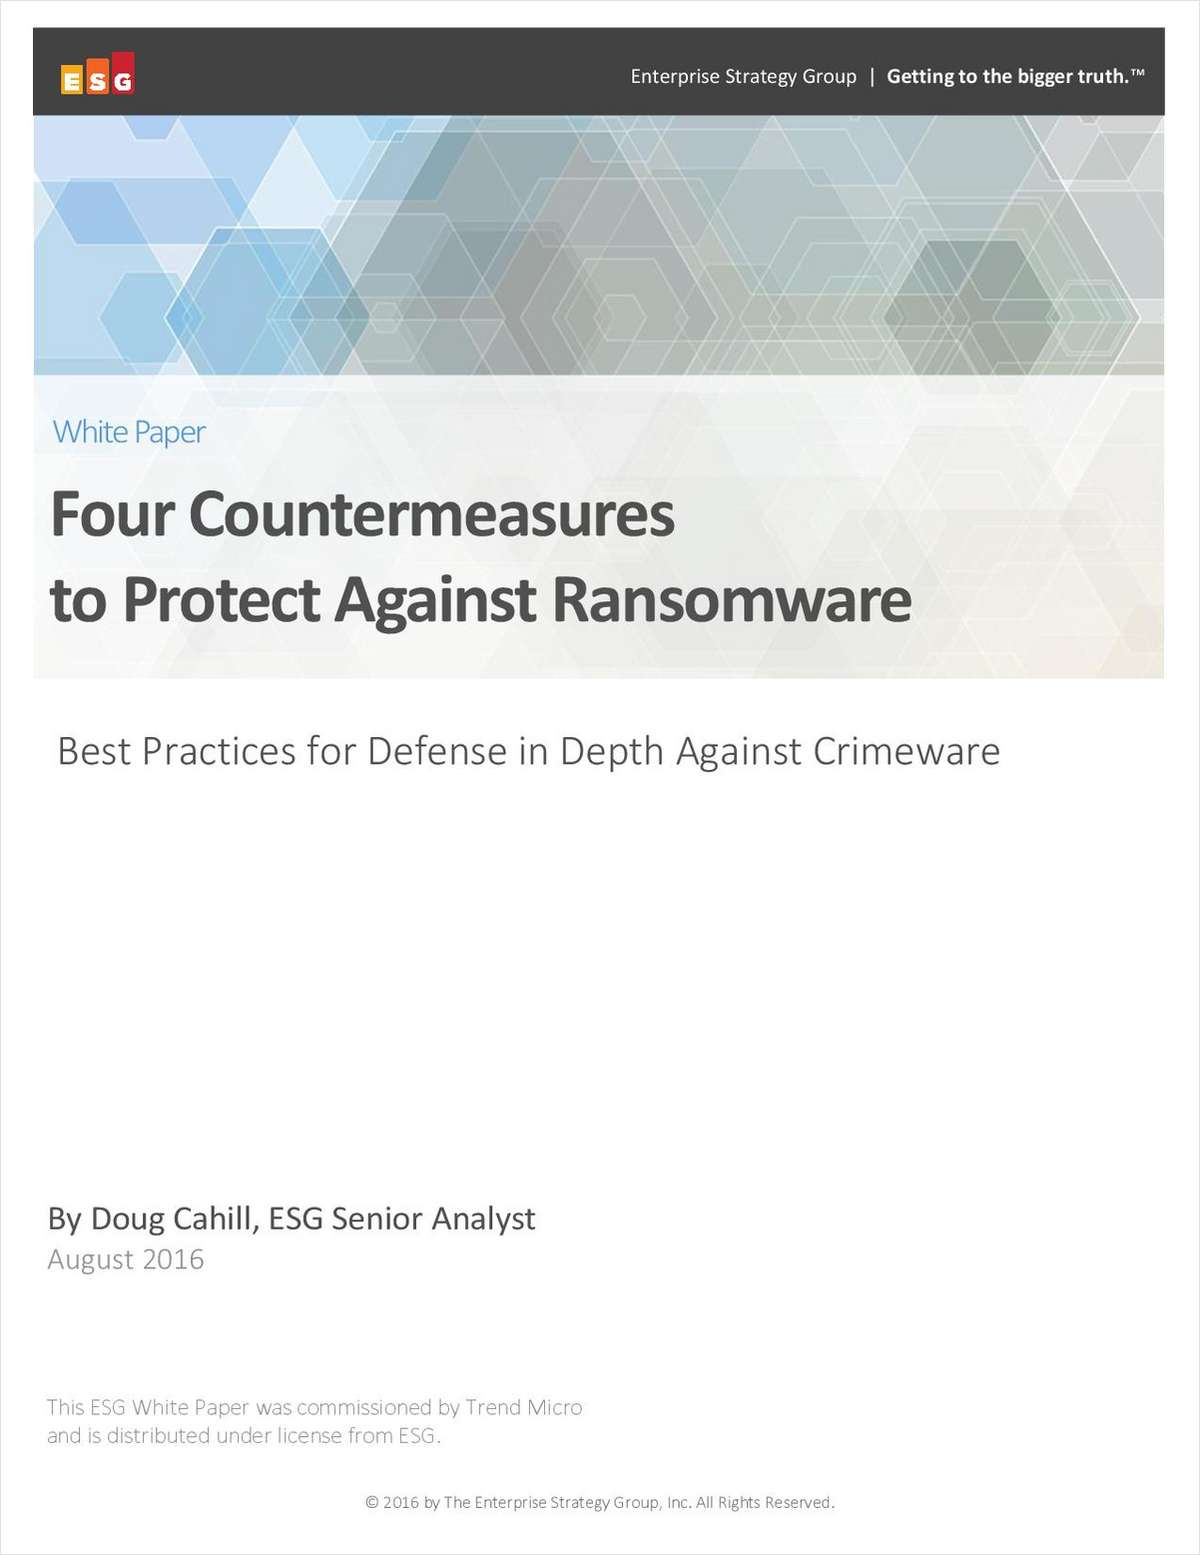 Four Countermeasures to Protect Against Ransomware